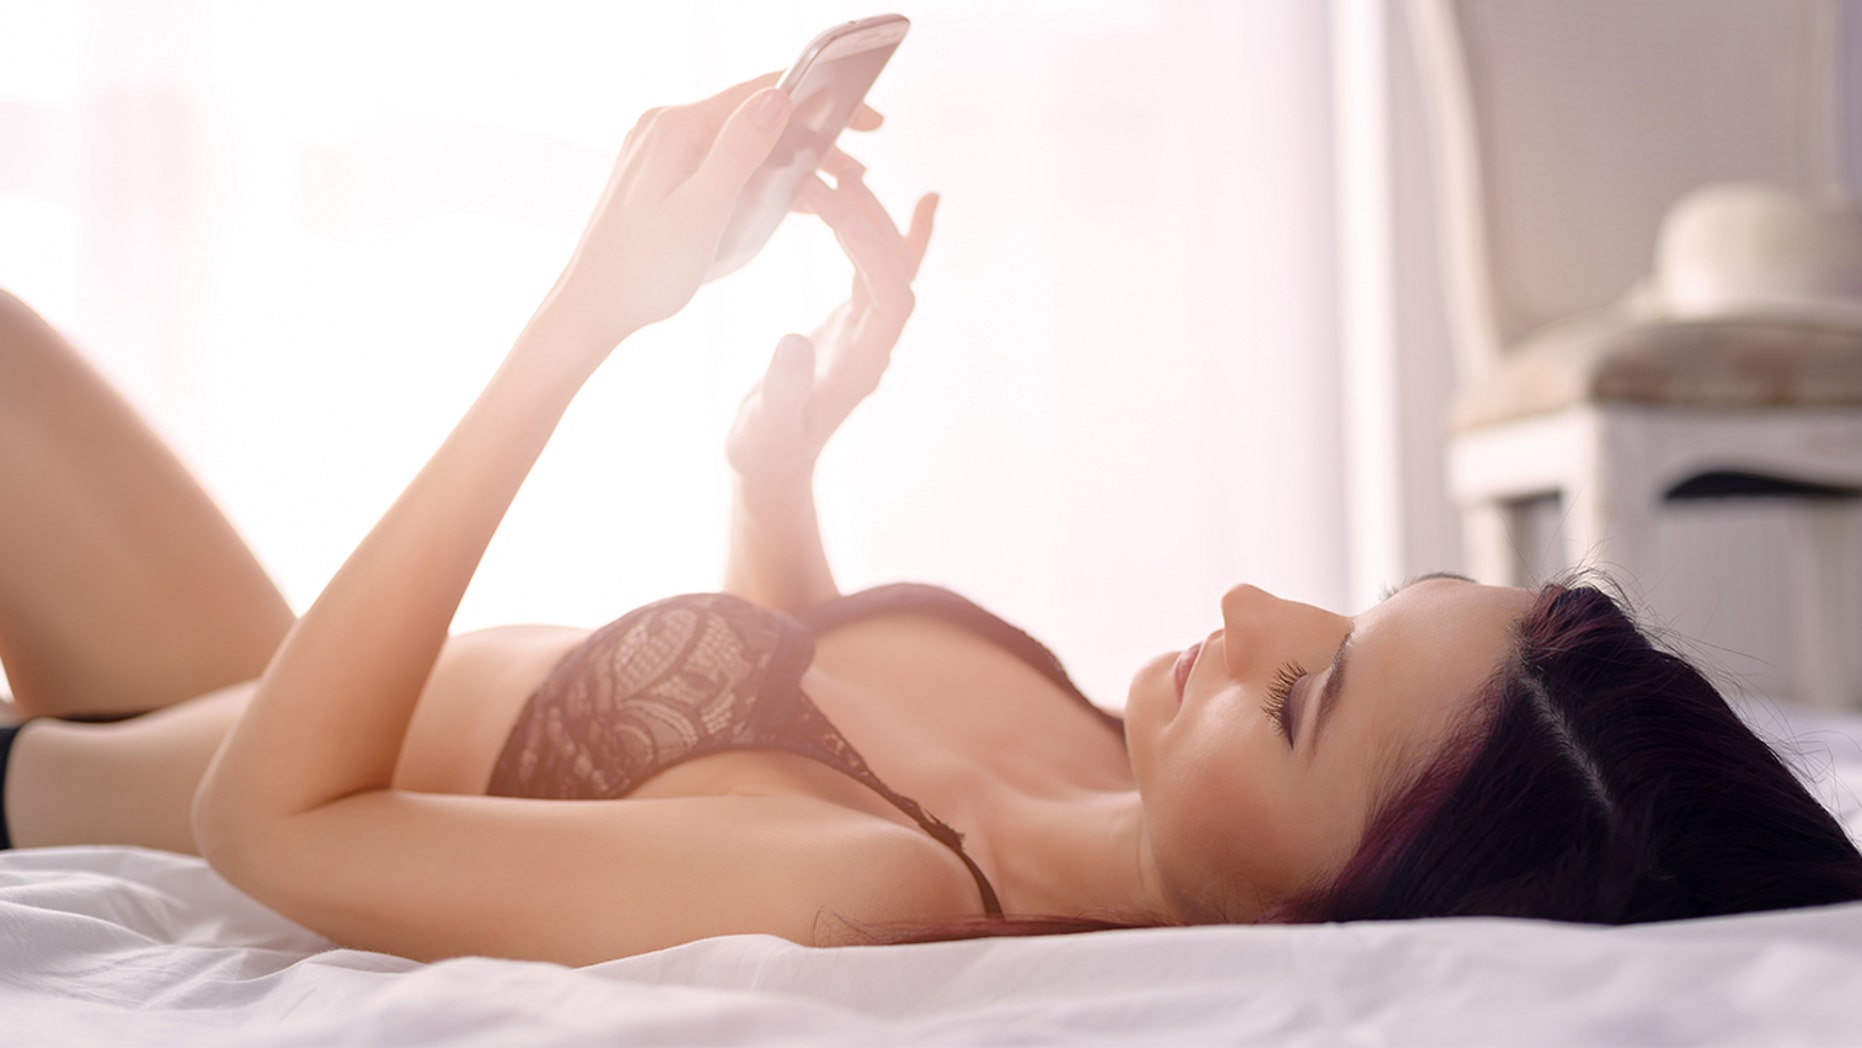 Sexting has become a major part of people's relationships, according to a new survey